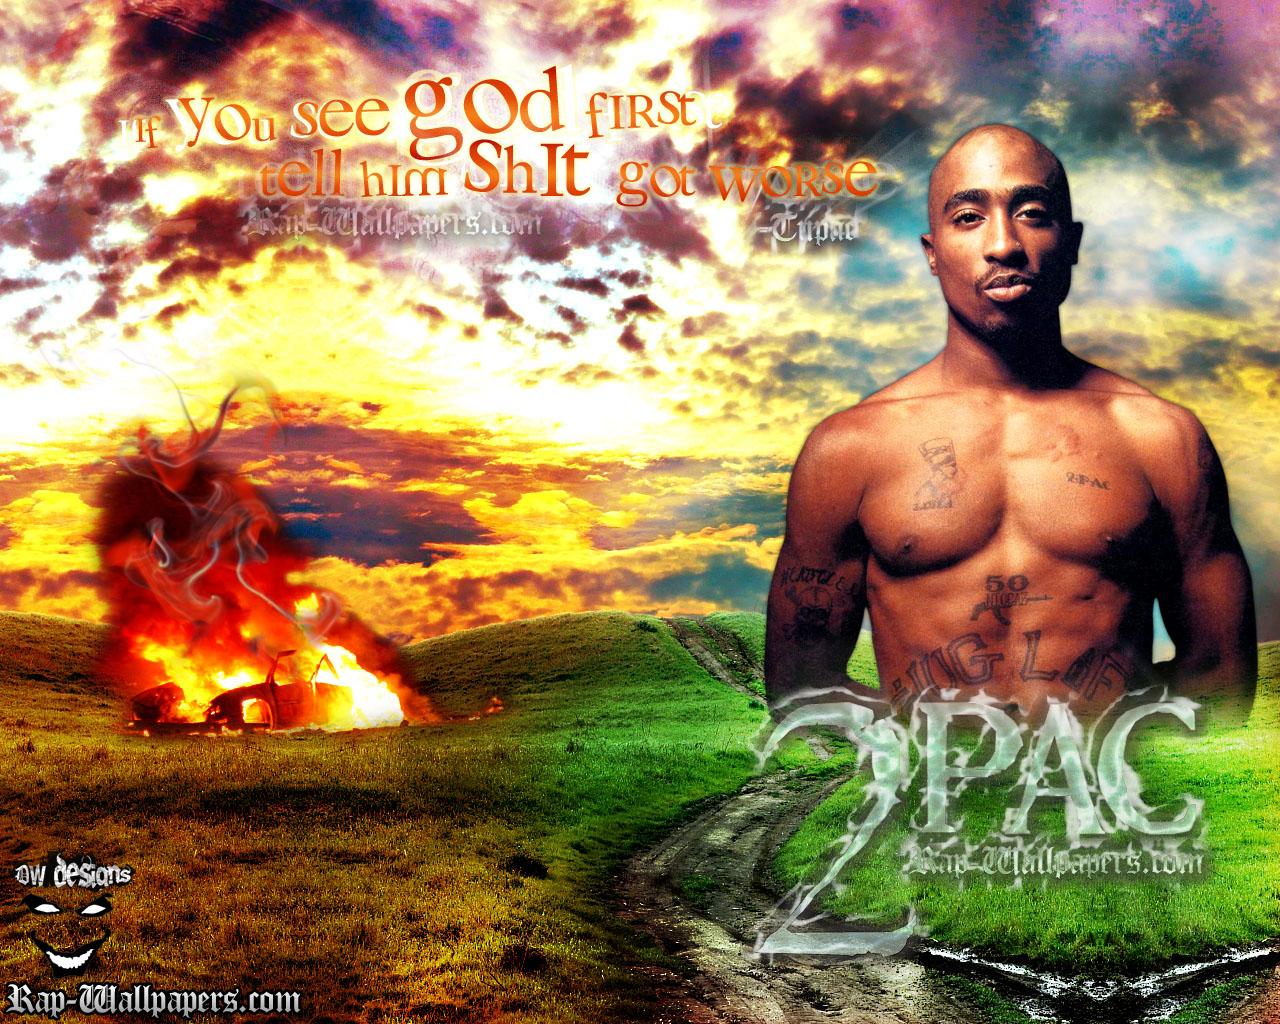 Tupac If you see god first